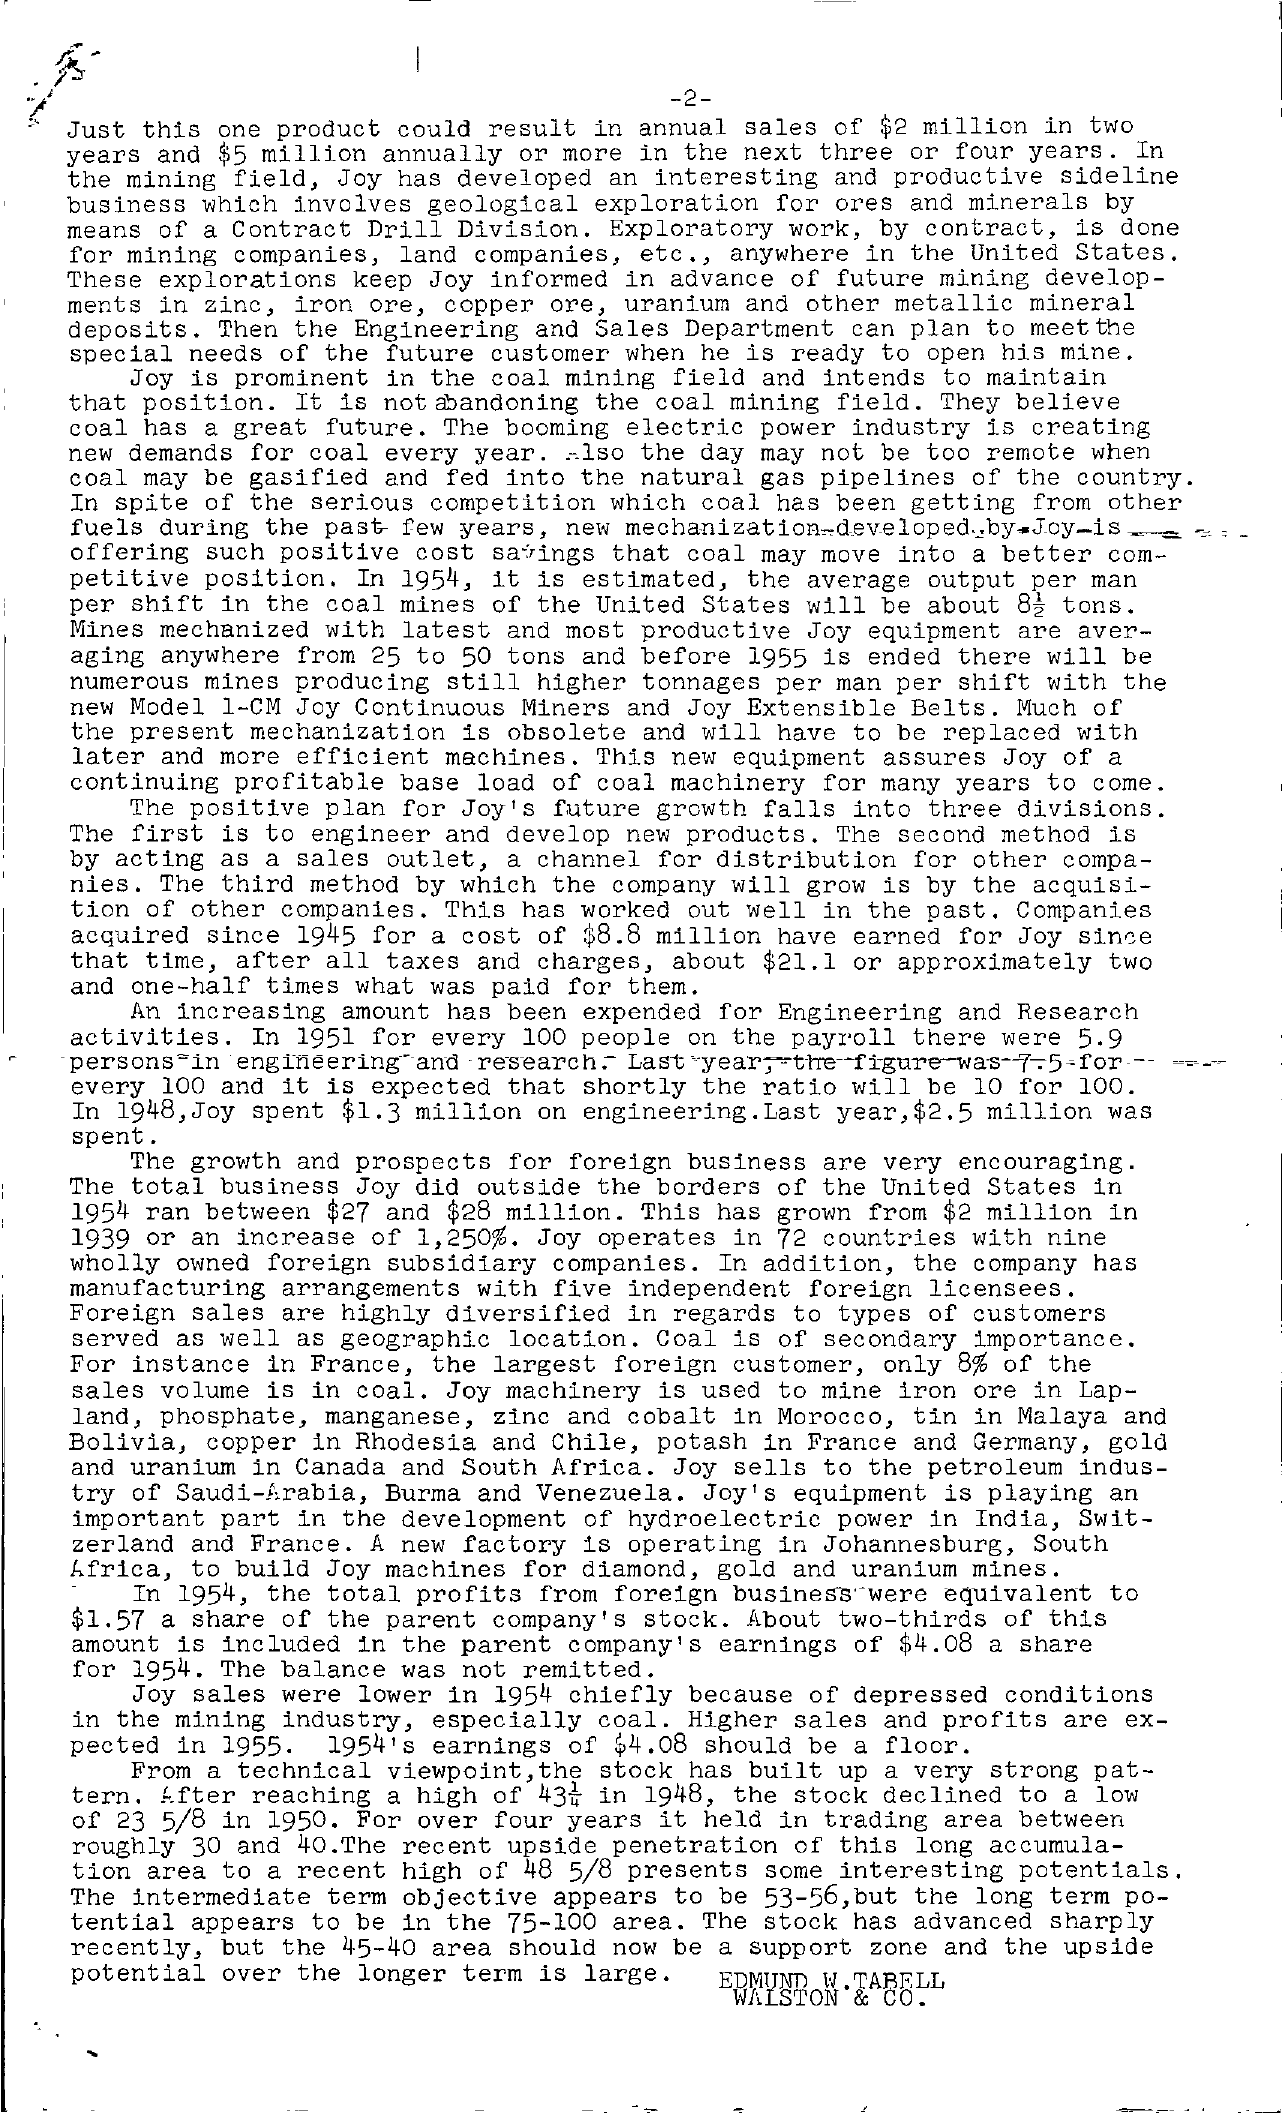 Tabell's Market Letter - December 23, 1954 page 2